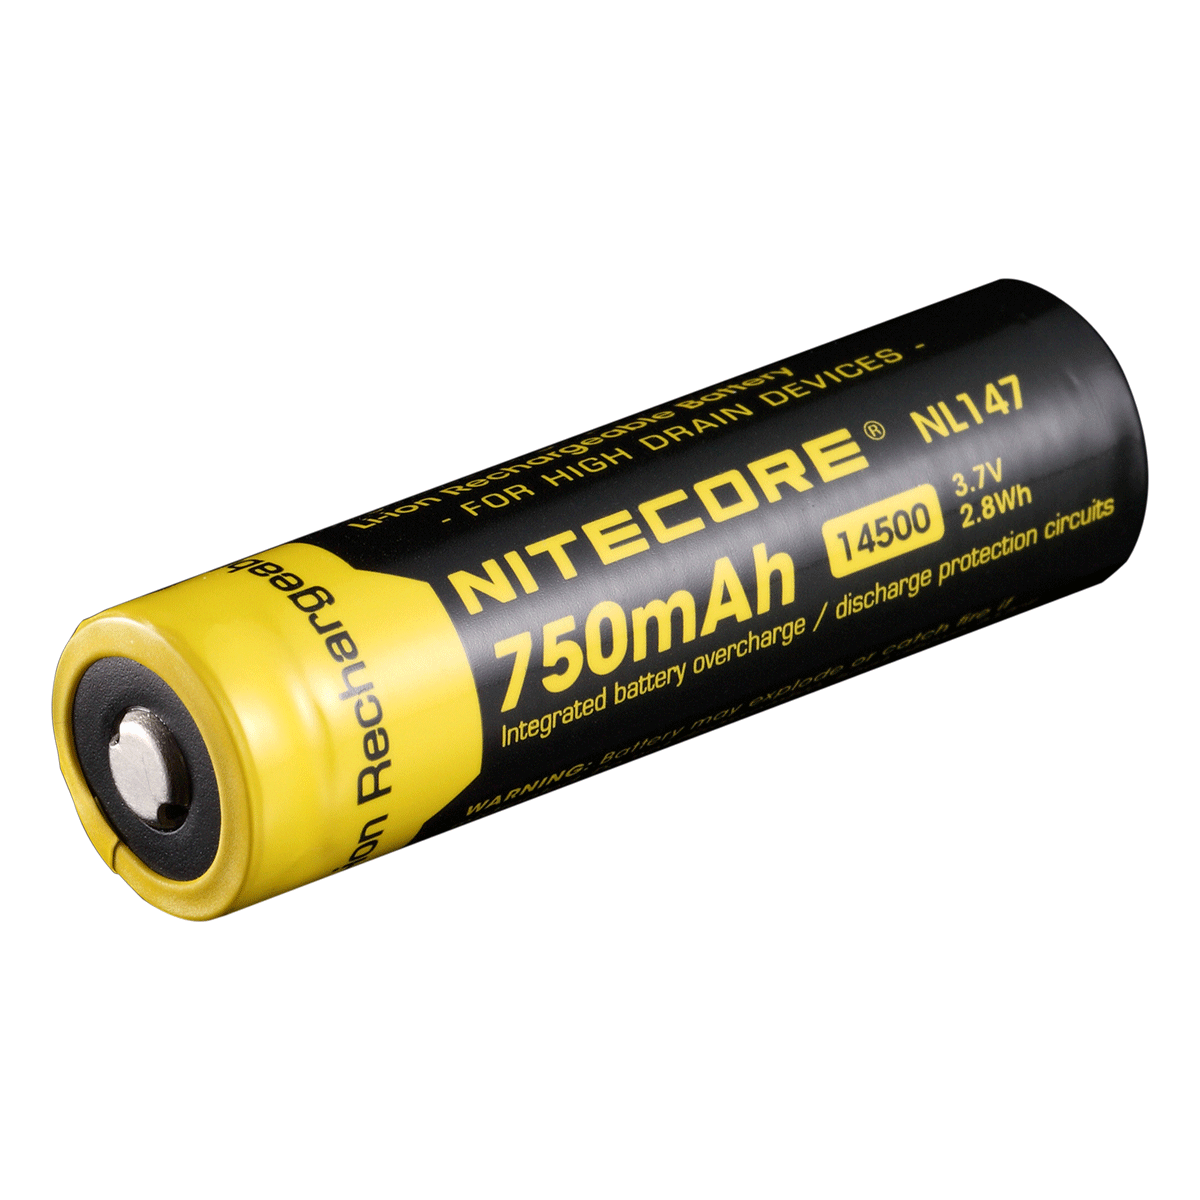 Nitecore 14500 Recharegeable Battery - 750mAh